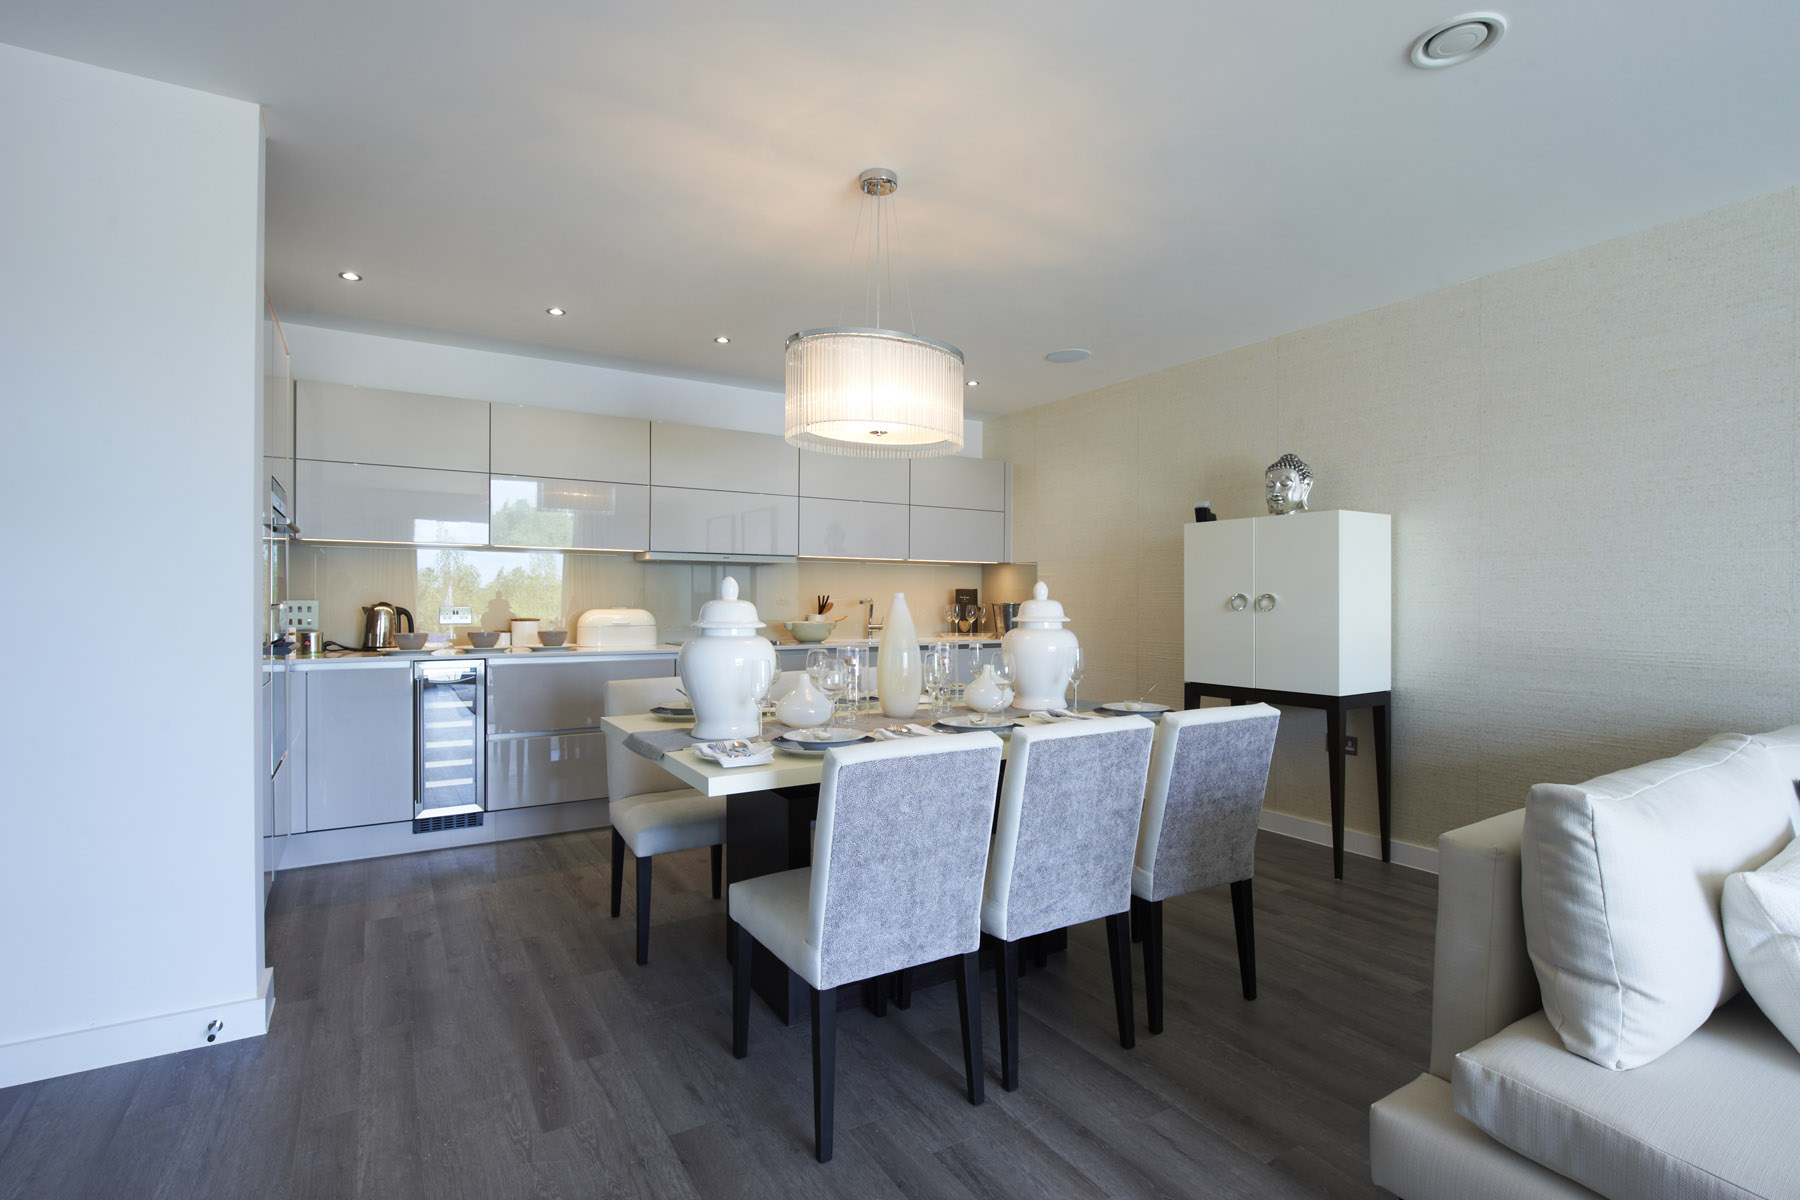 3 Bed Apt Kitchen Dining